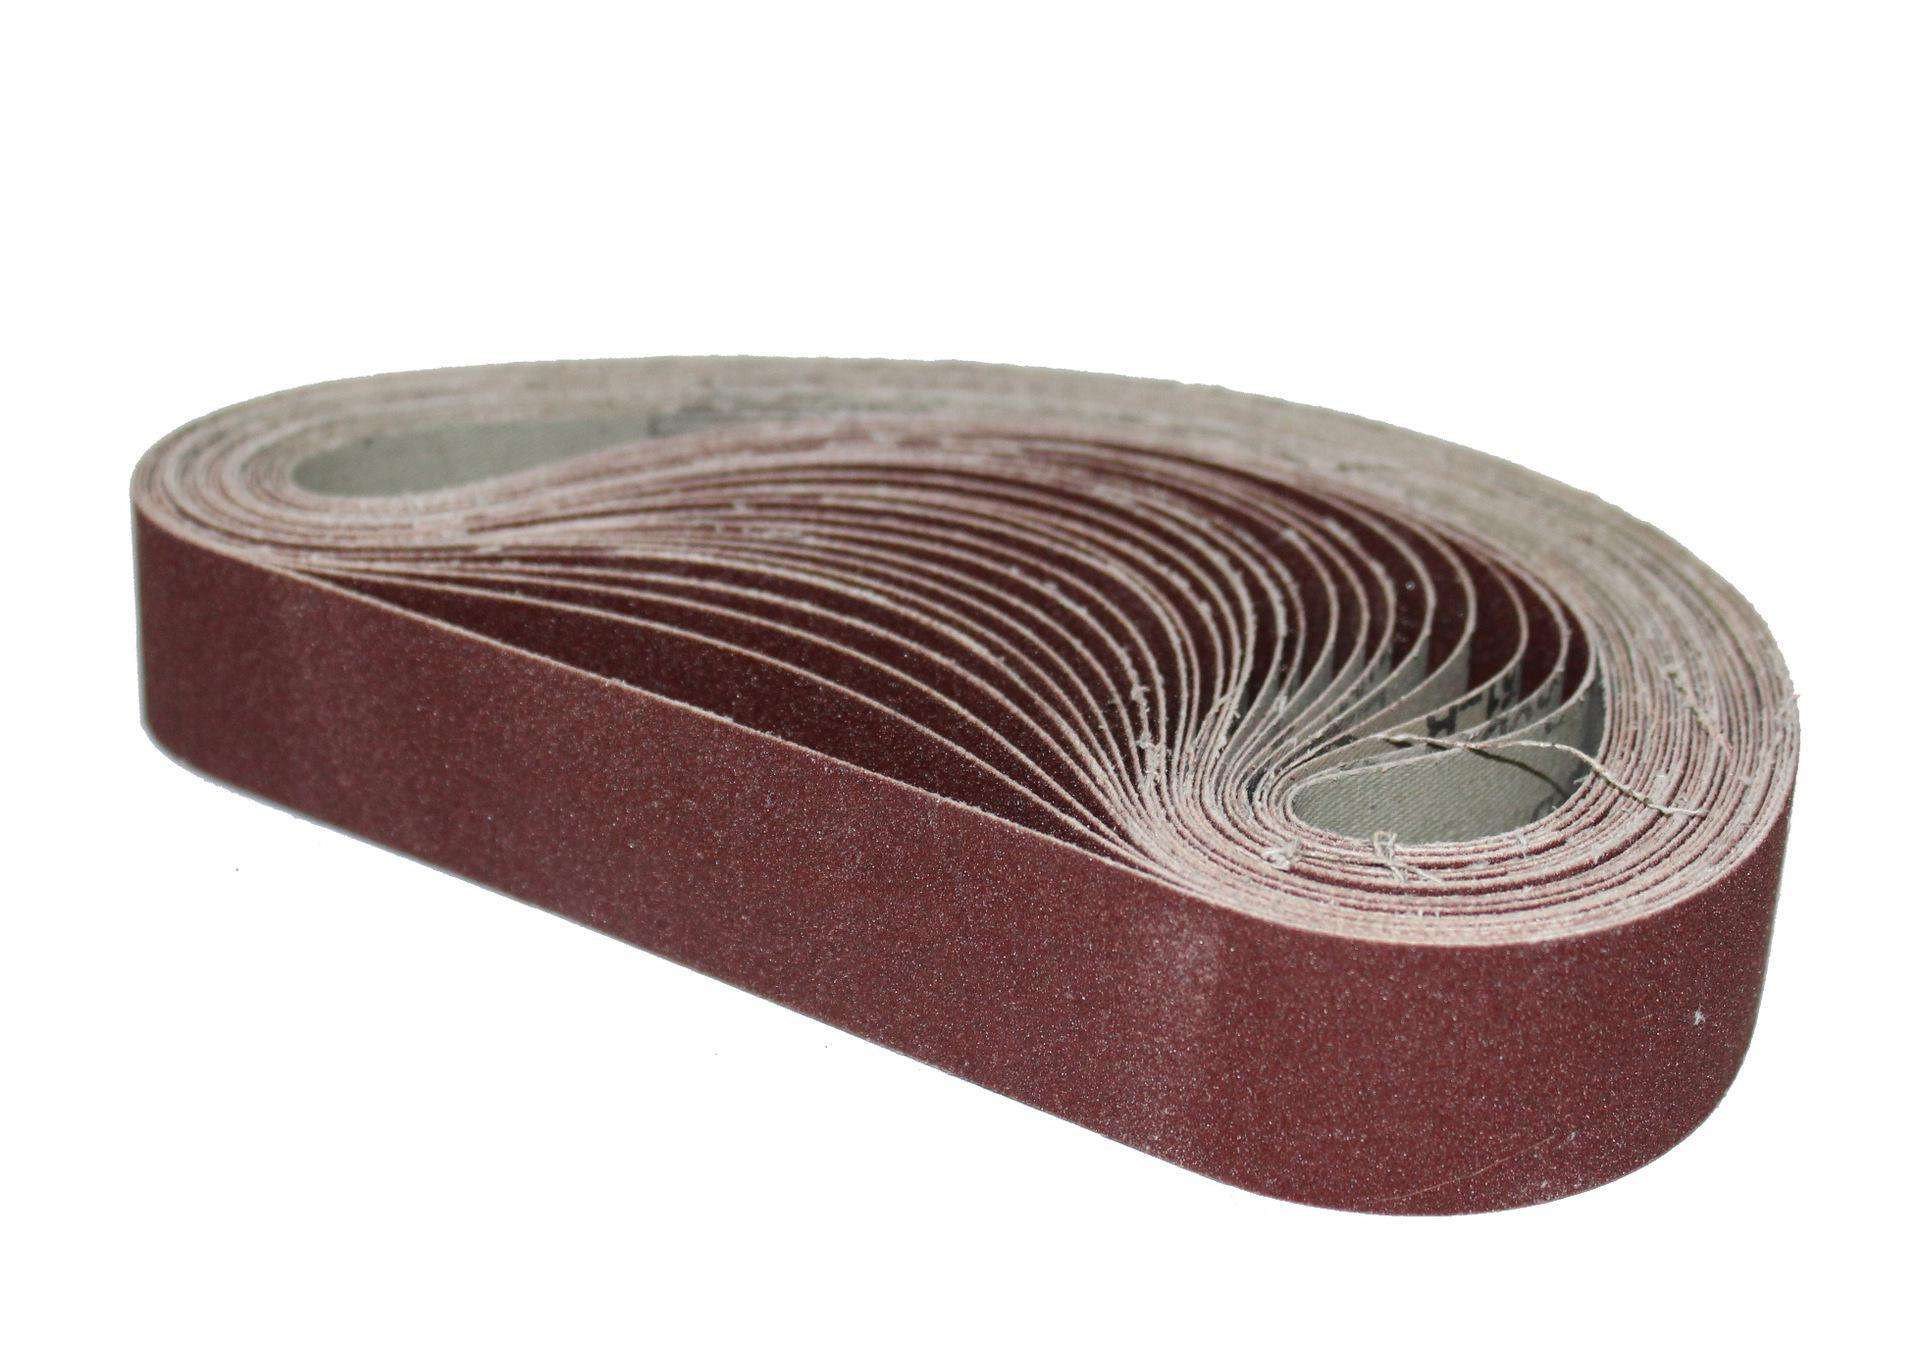 high quality abrasive sanding belt for stainless steel and furniture wood